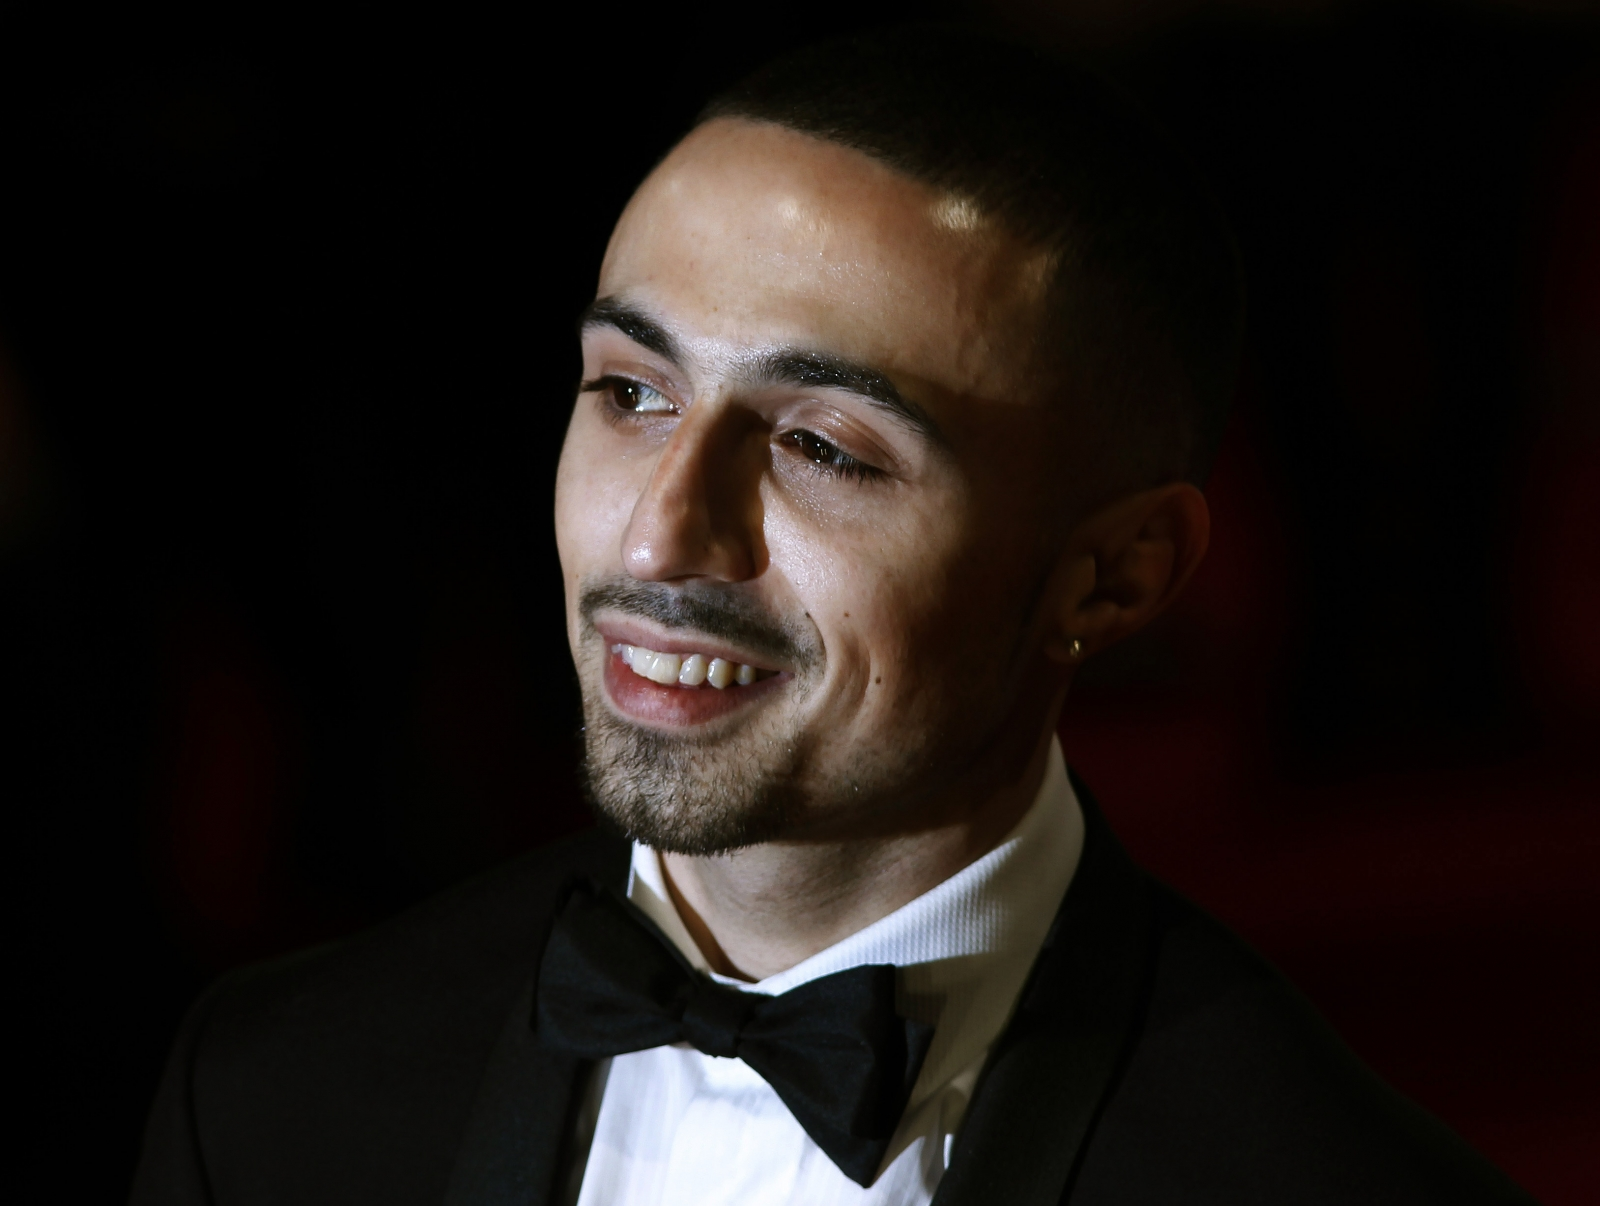 Actor and rapper Adam Deacon, was nominated for the Orange Wednesdays Rising Star award